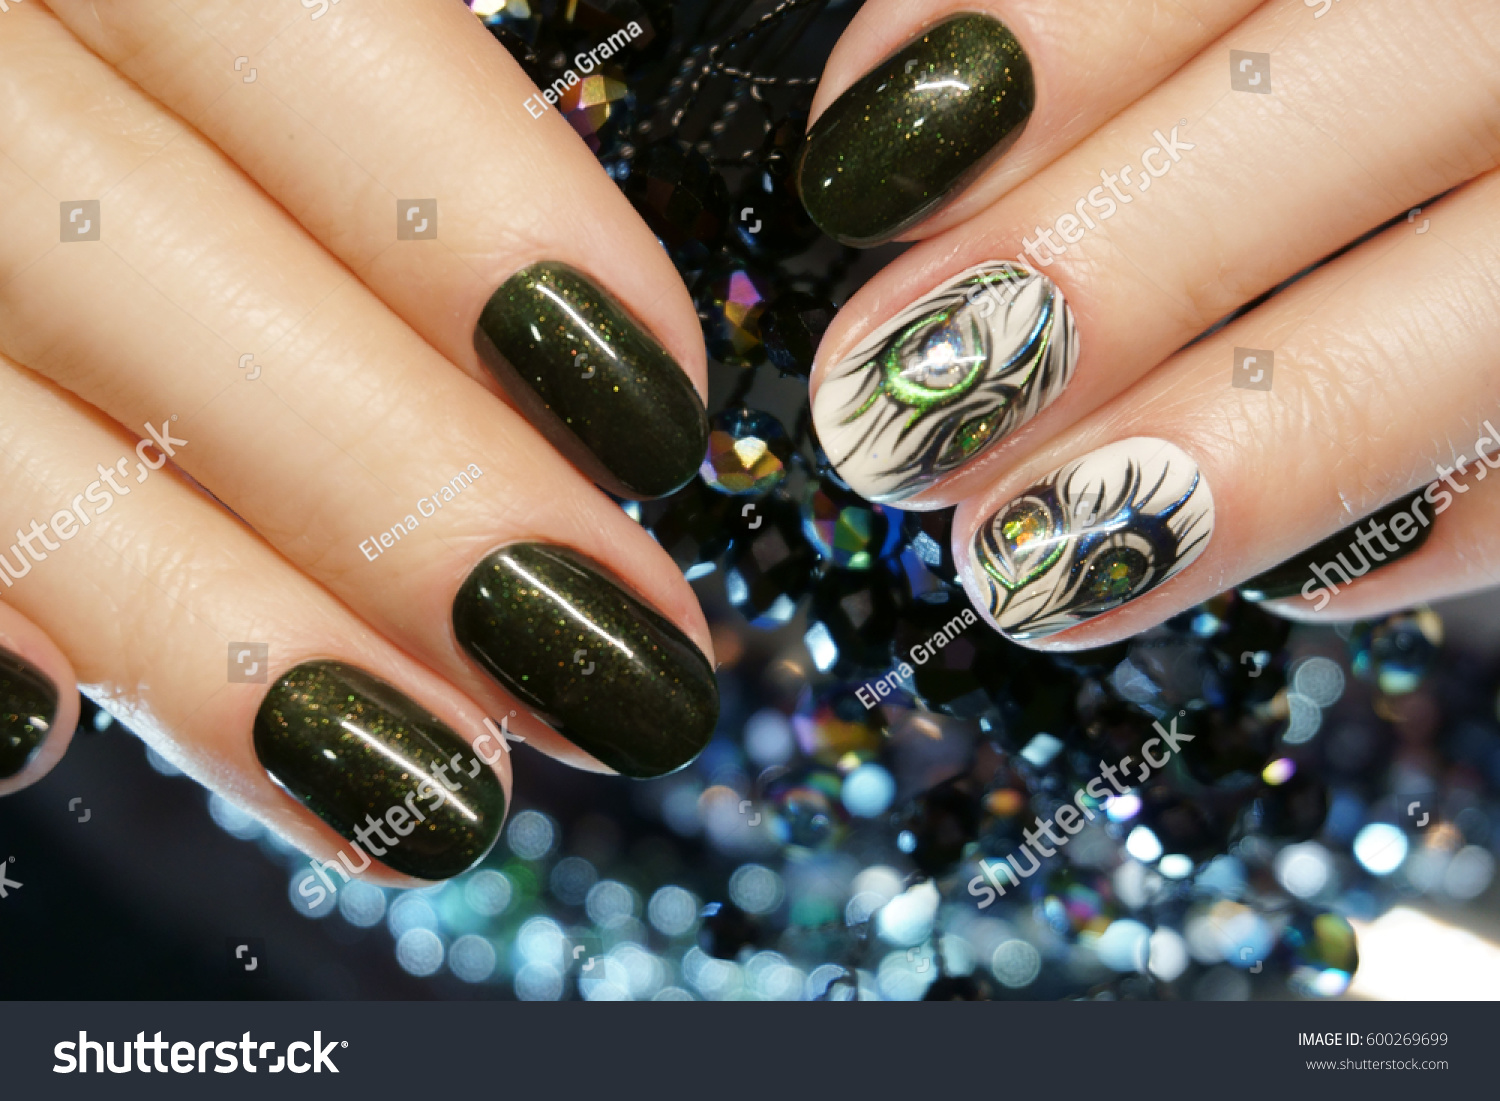 Beautiful nail art manicure nail designs stock photo 600269699 beautiful nail art manicure nail designs with decorationnicure nail paint nail care prinsesfo Image collections